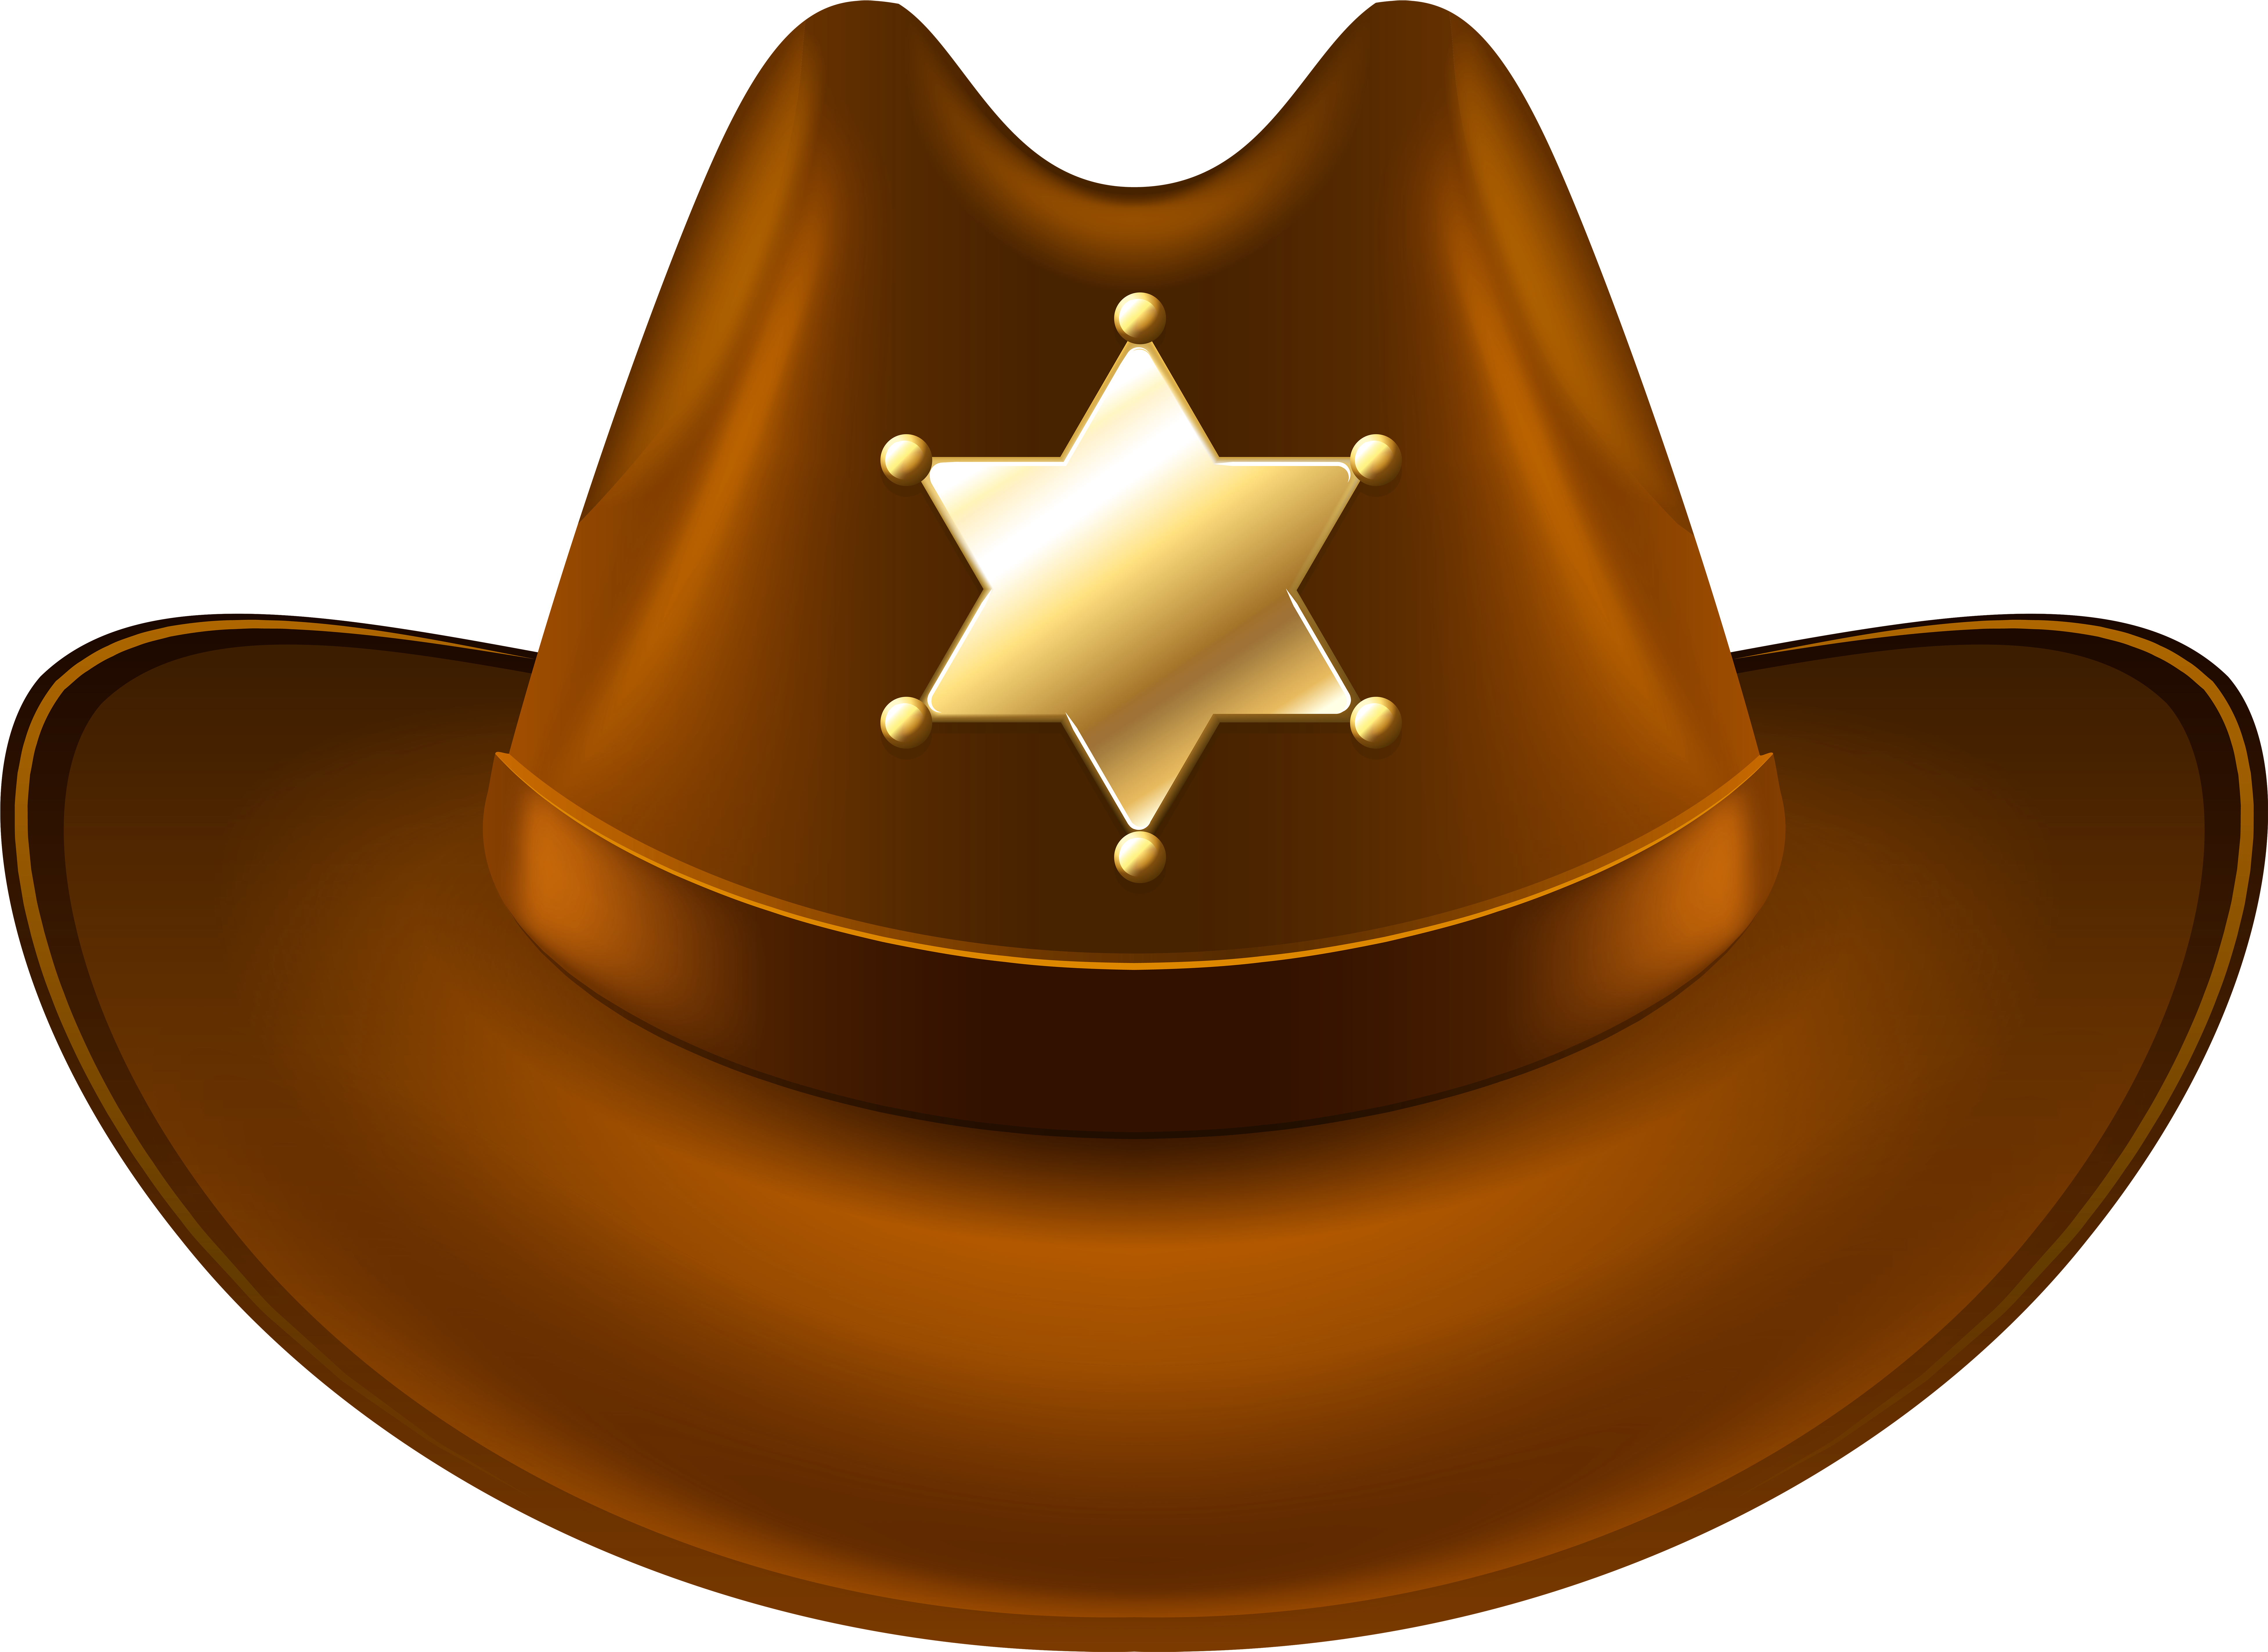 Cowboy hat images clipart vector royalty free library Cowboy Hat Clipart to download – Free Clipart Images vector royalty free library